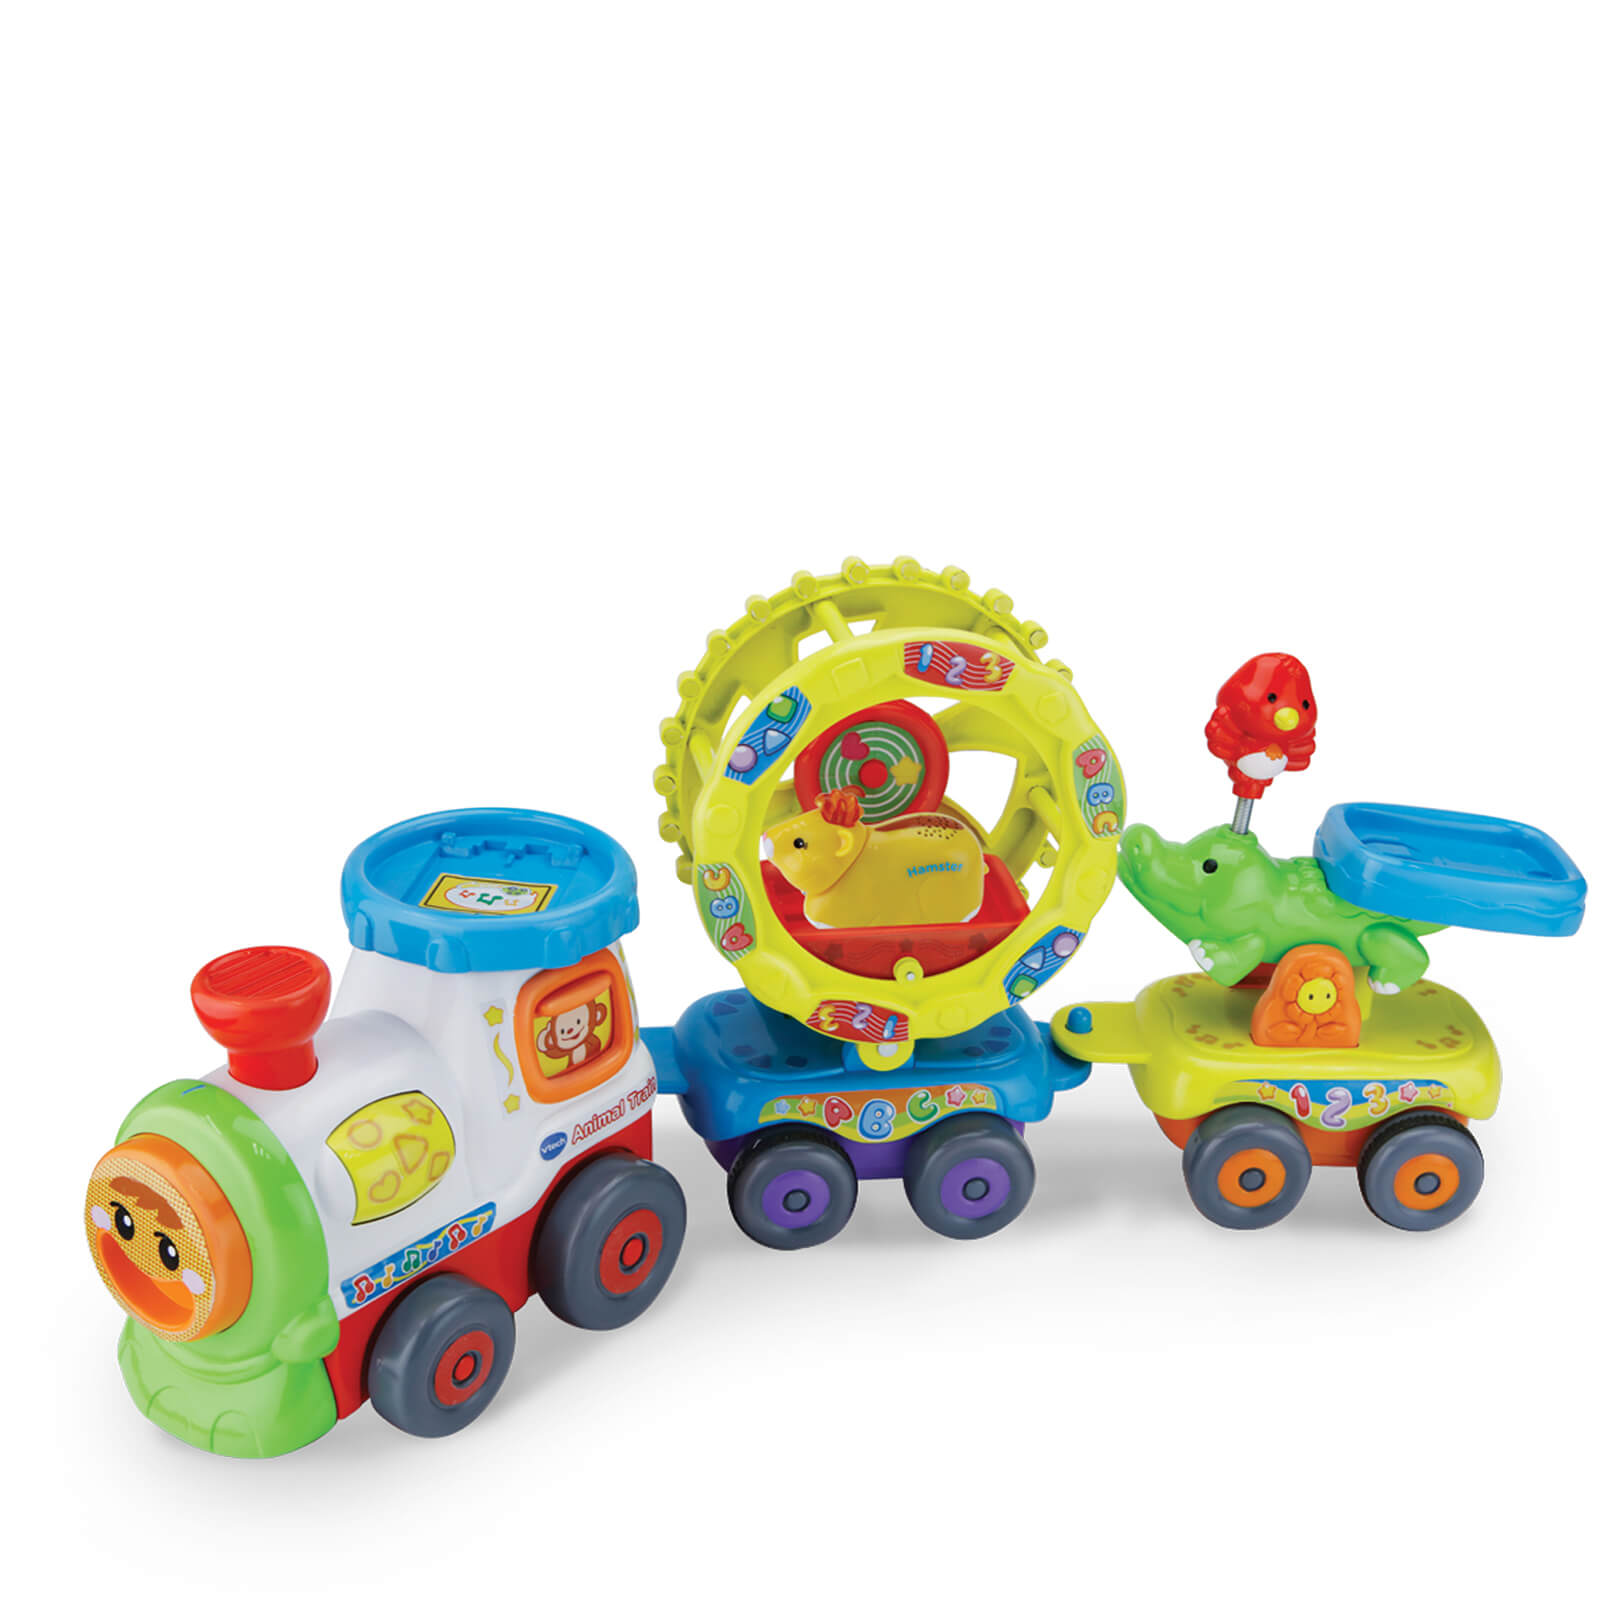 Train Fantastico Rigolo - Tut Tut Animo - Vtech